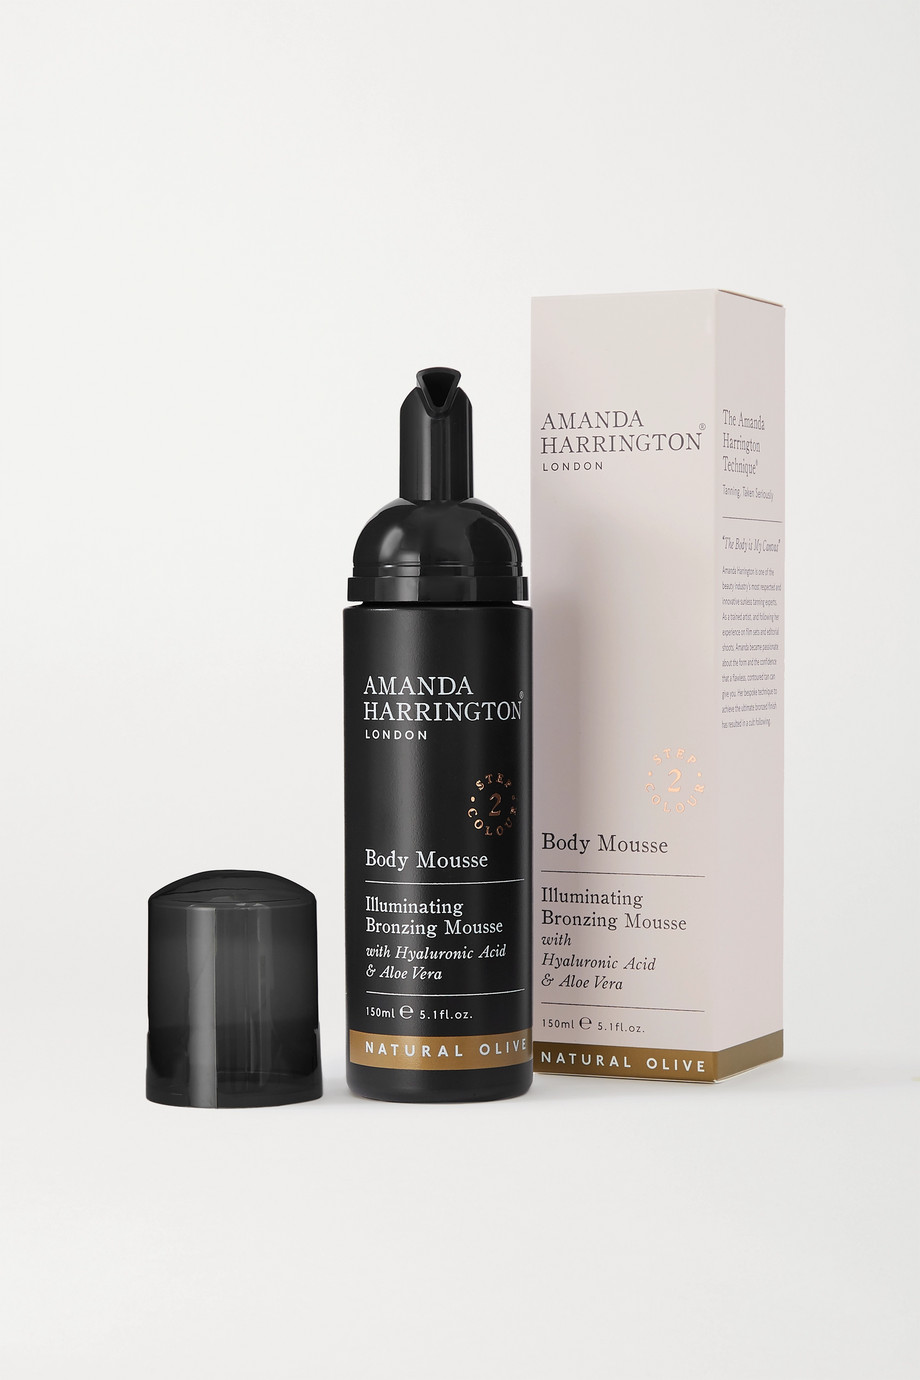 Amanda Harrington Body Mousse - Natural Olive, 150ml